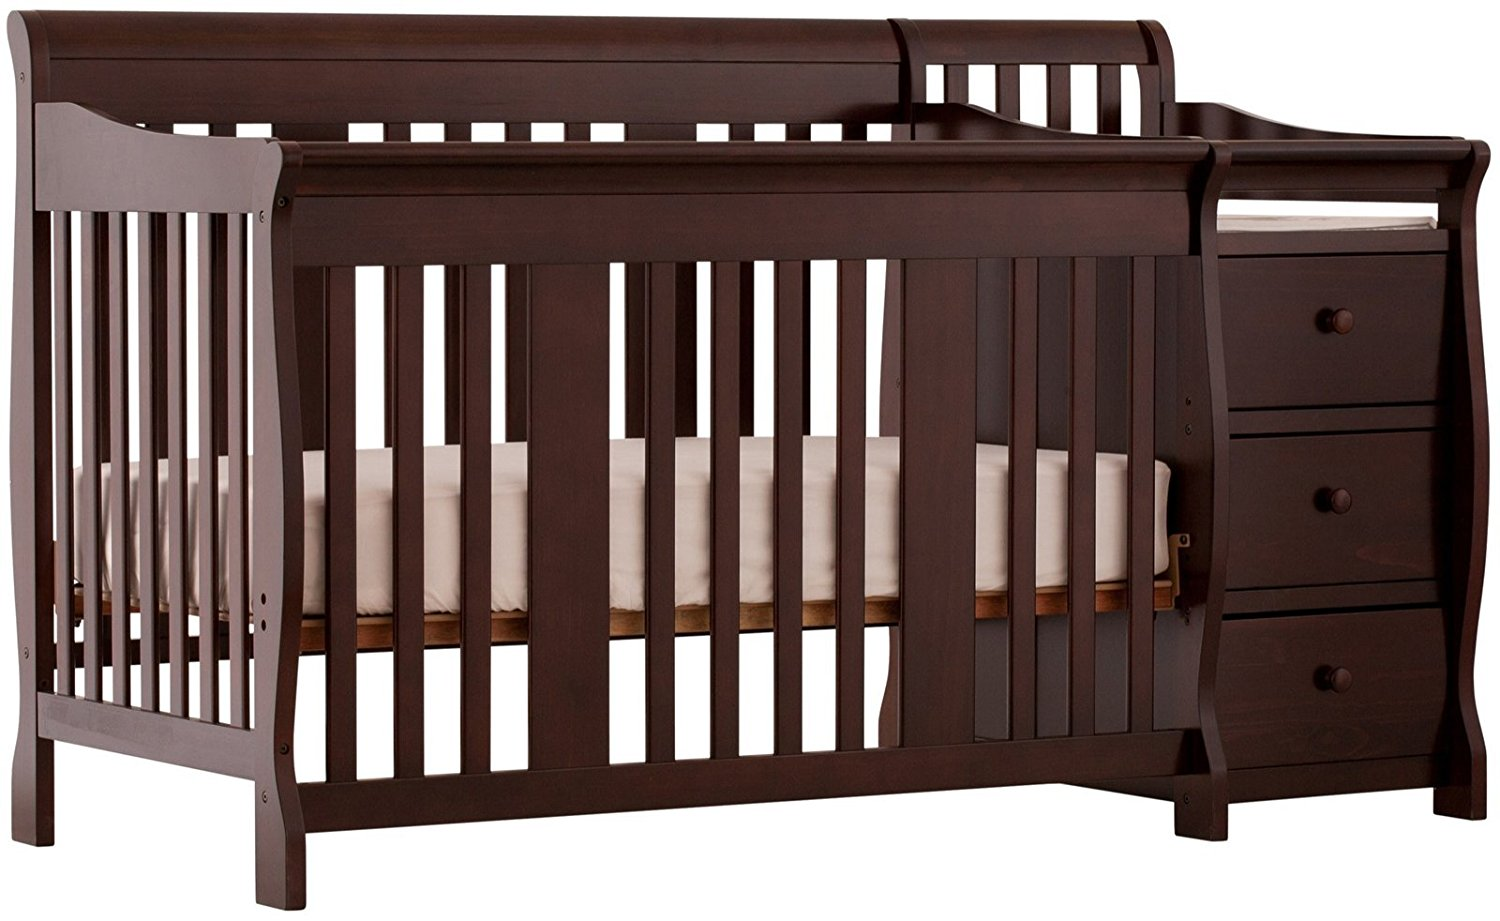 Image result for crib for baby